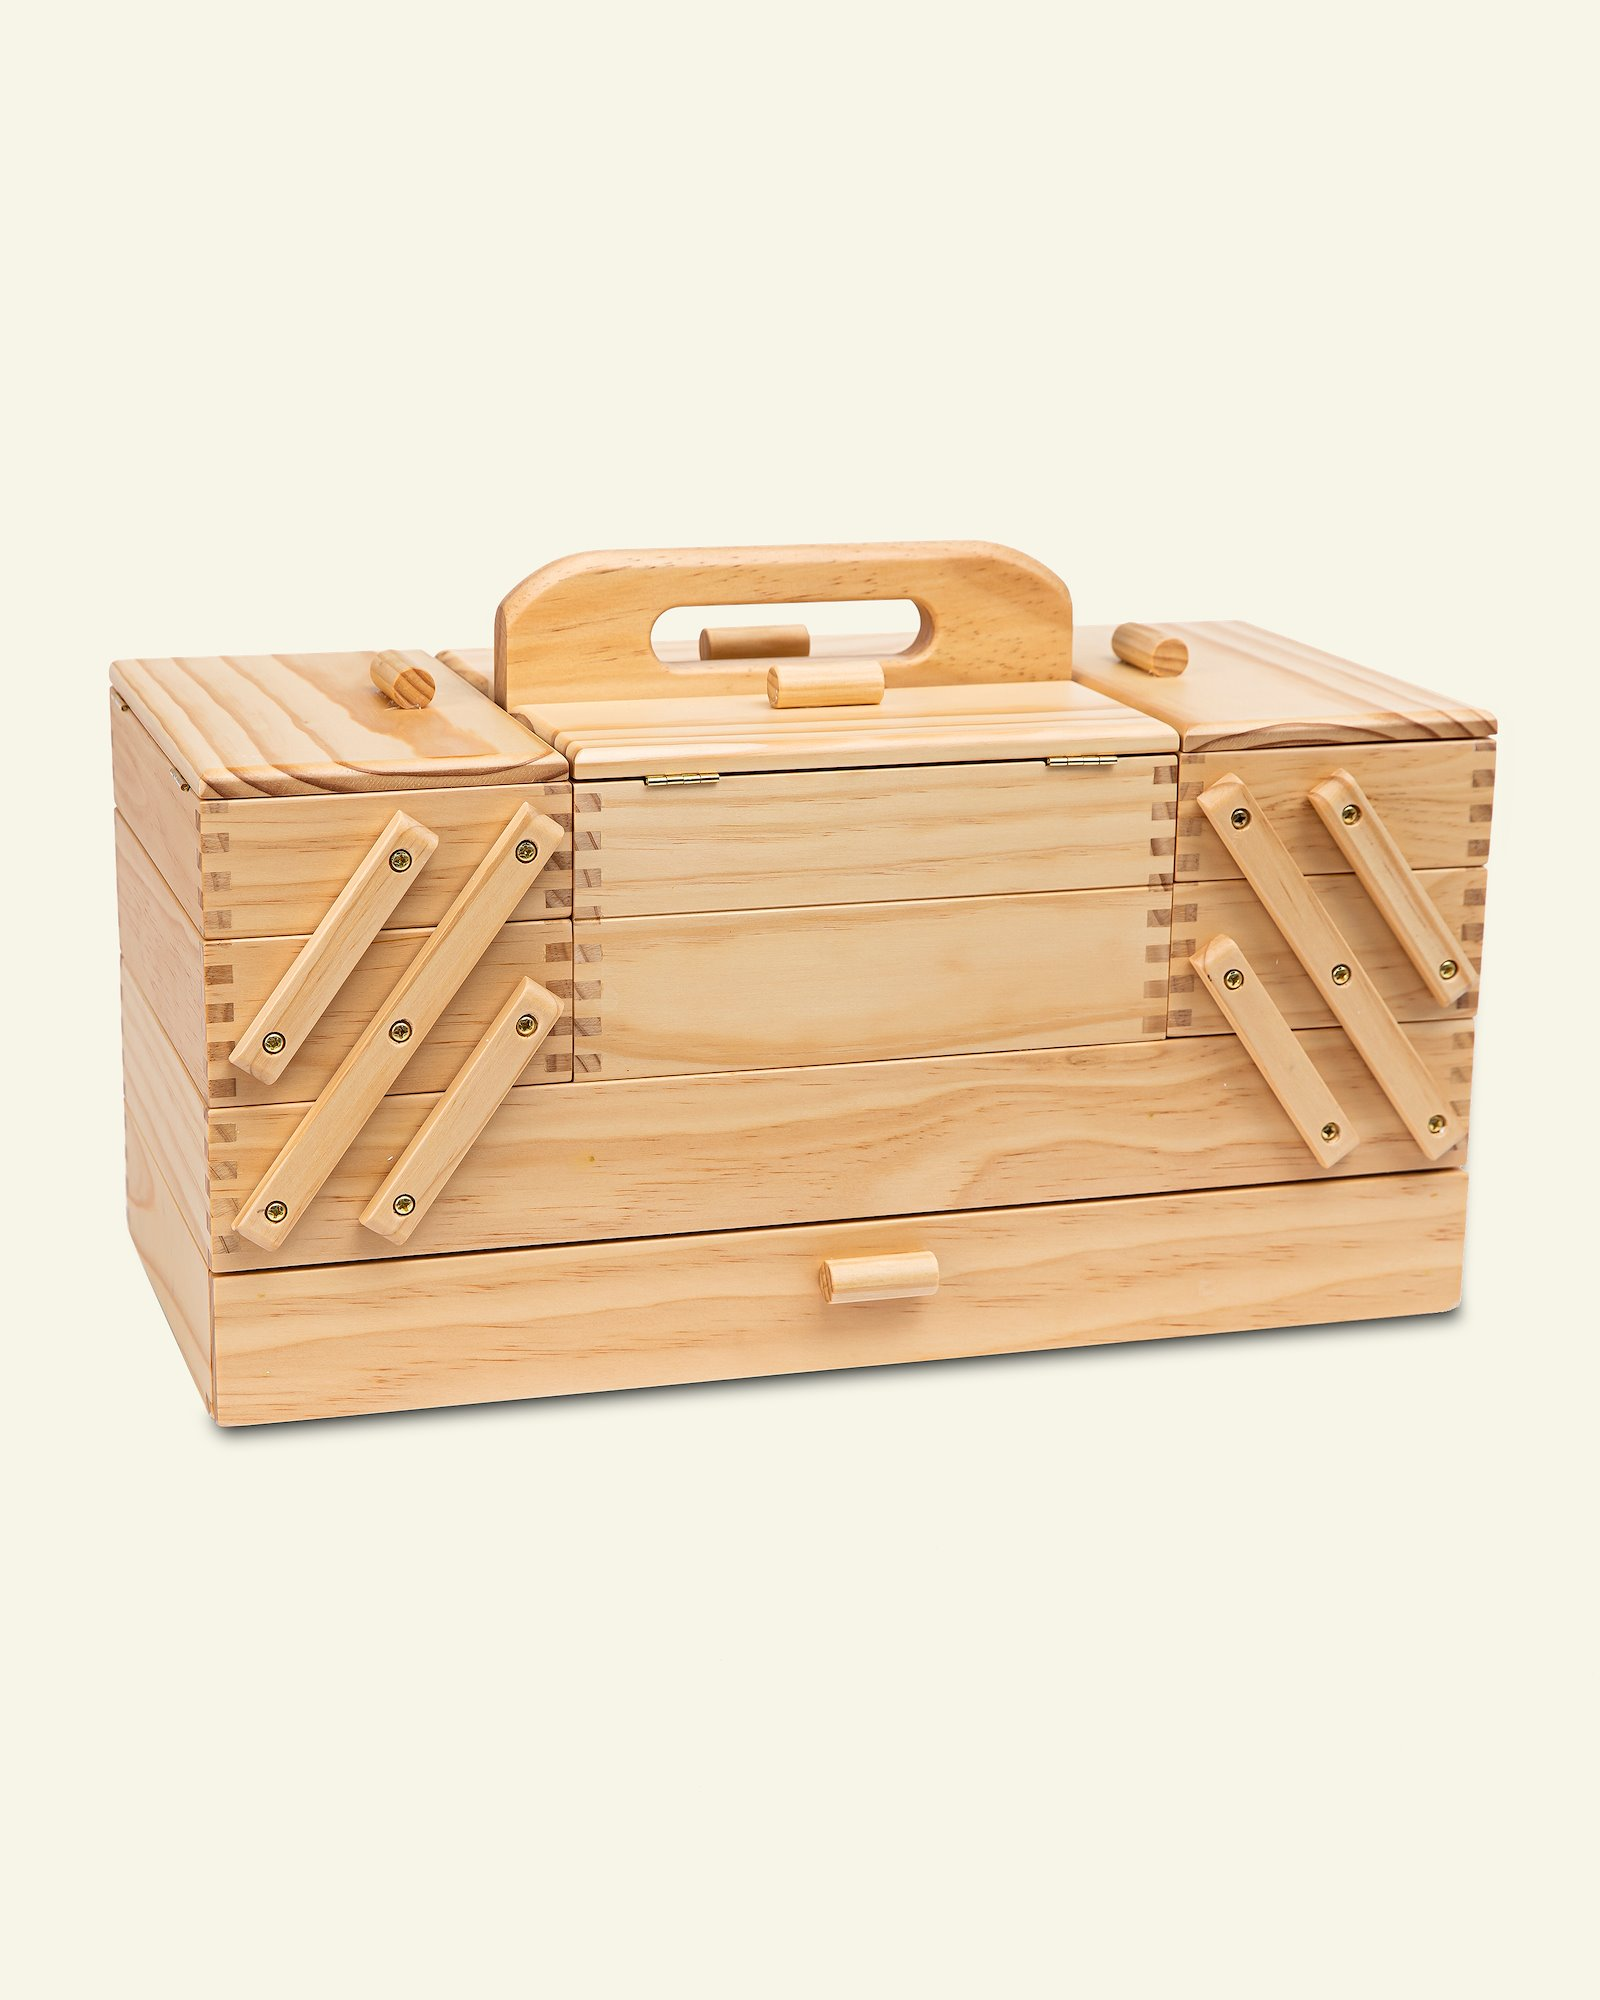 Sewing box pinewood lacquered 23x45x32cm